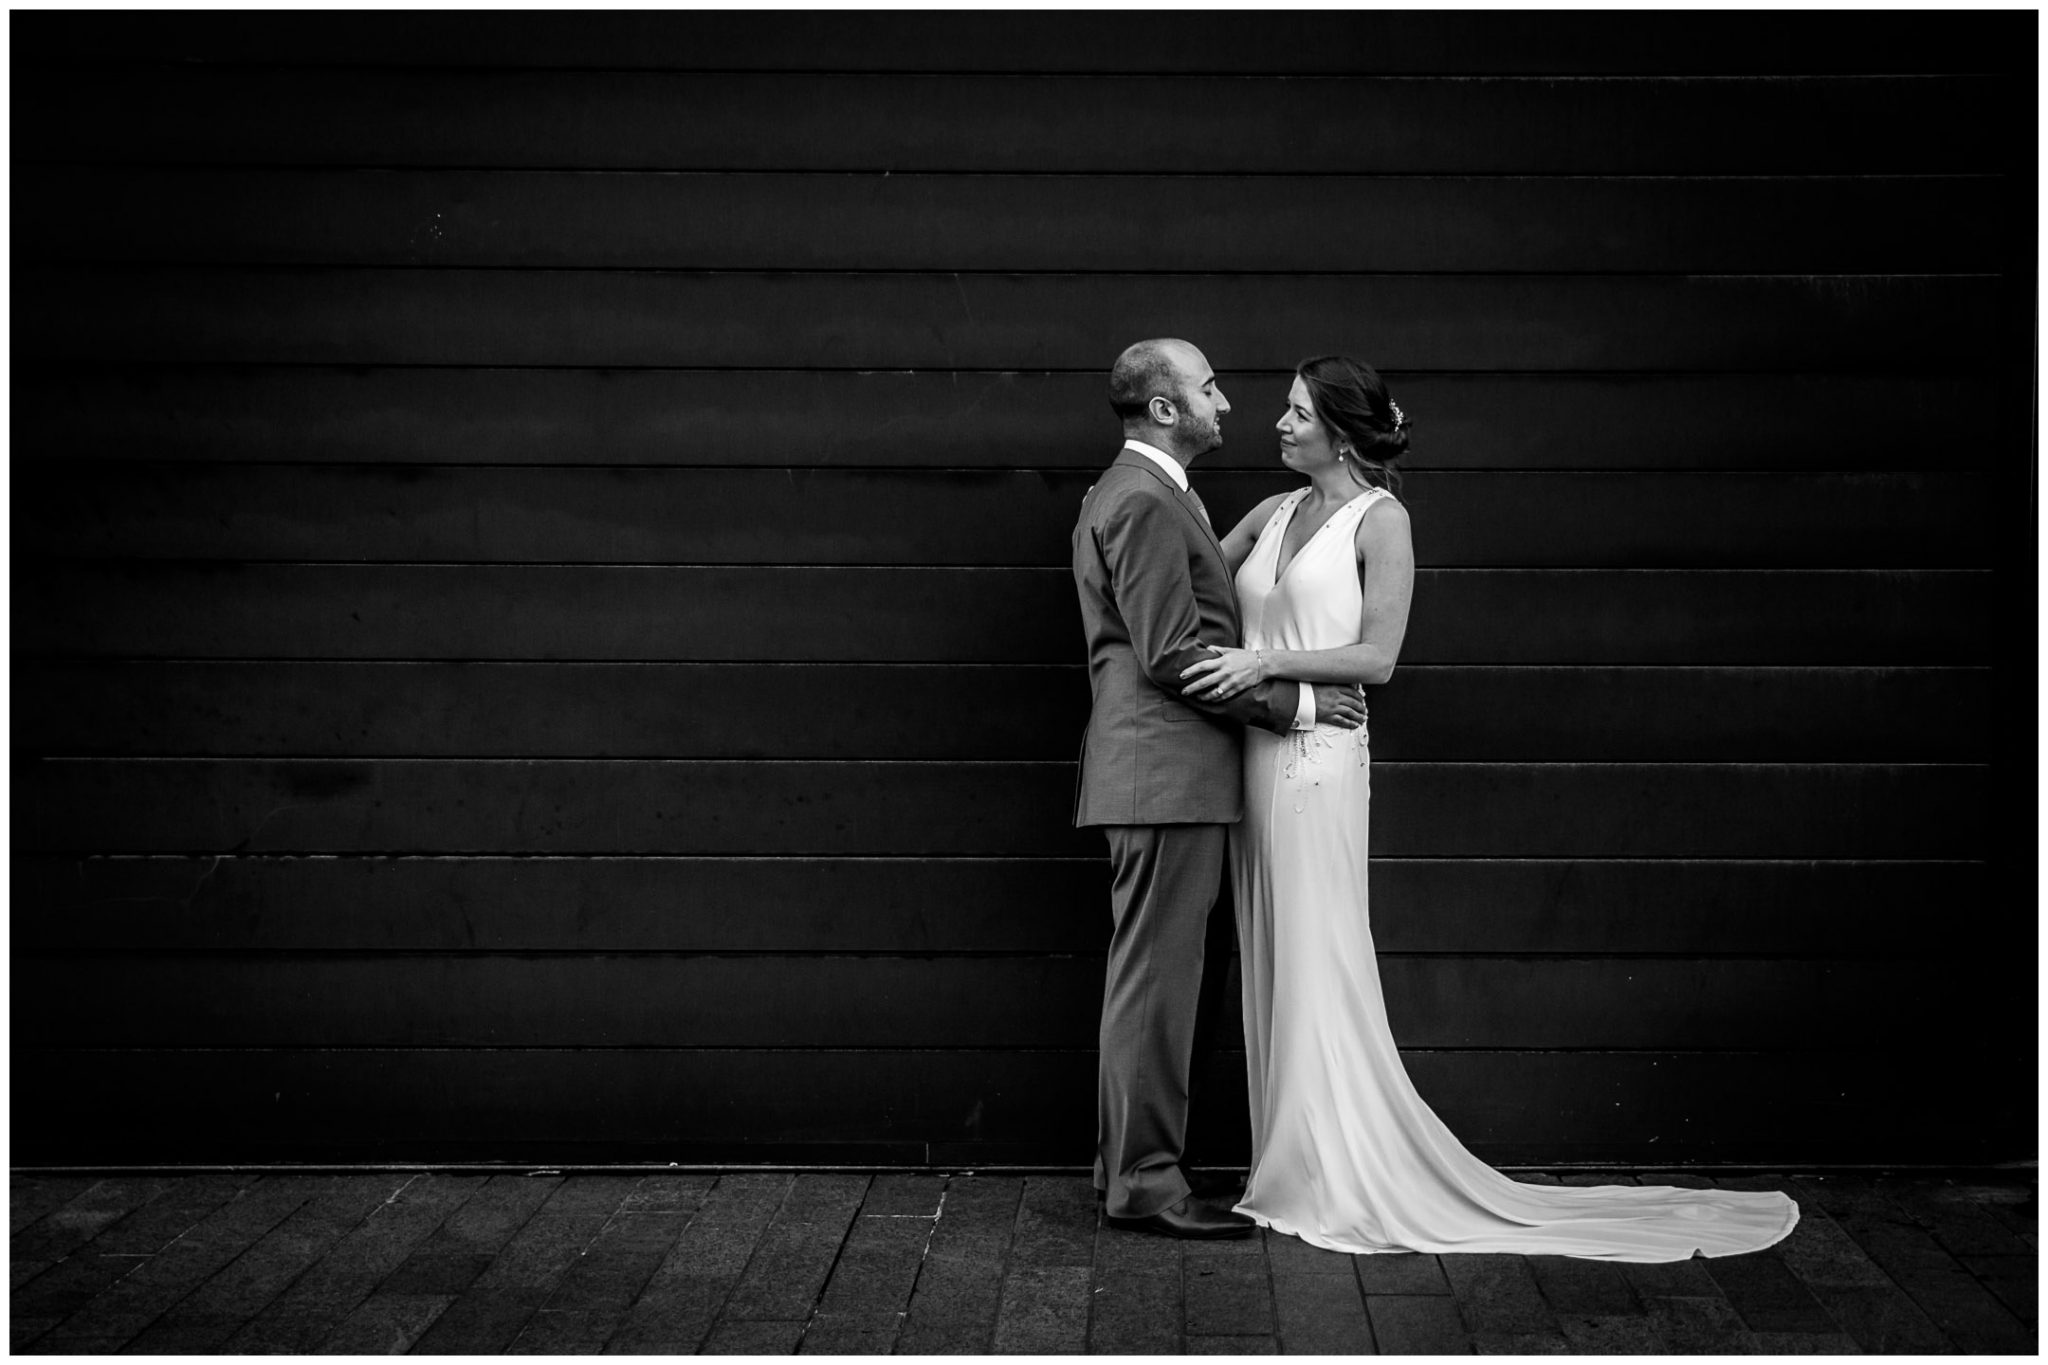 Black and white couple portrait hotel exterior